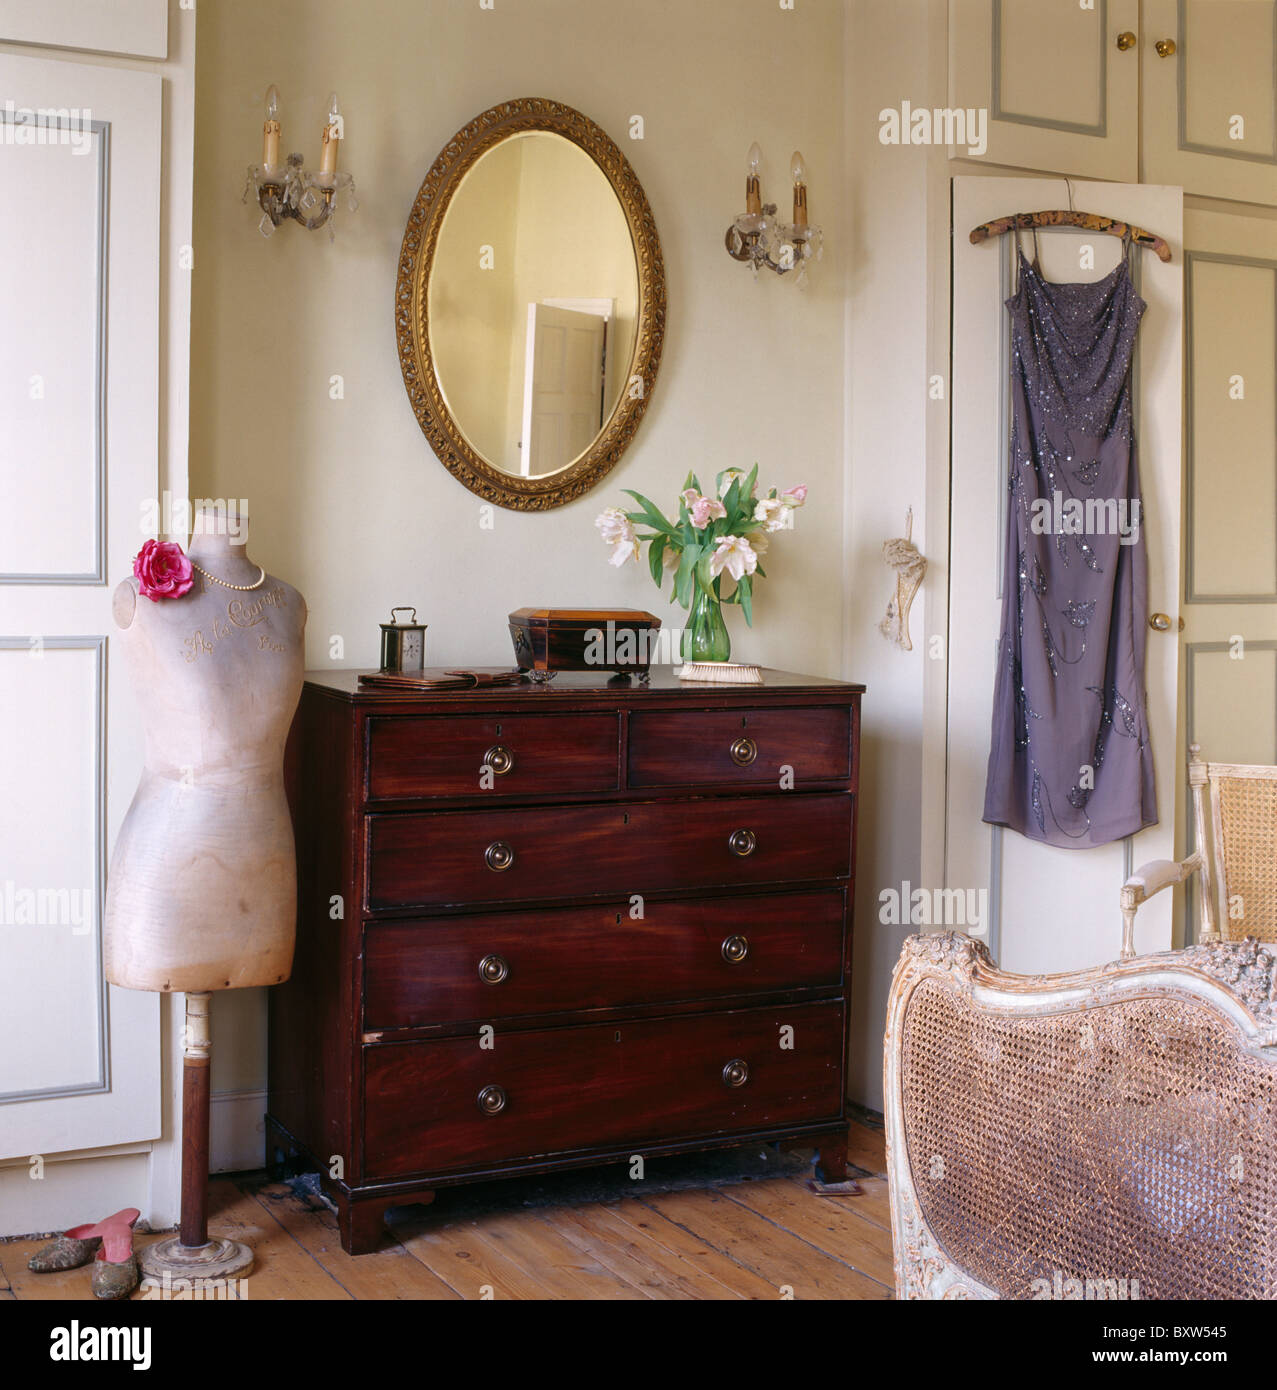 Oval Mirror Above Antique Chest Of Drawers In Townhouse Bedroom With Stock Photo Royalty Free